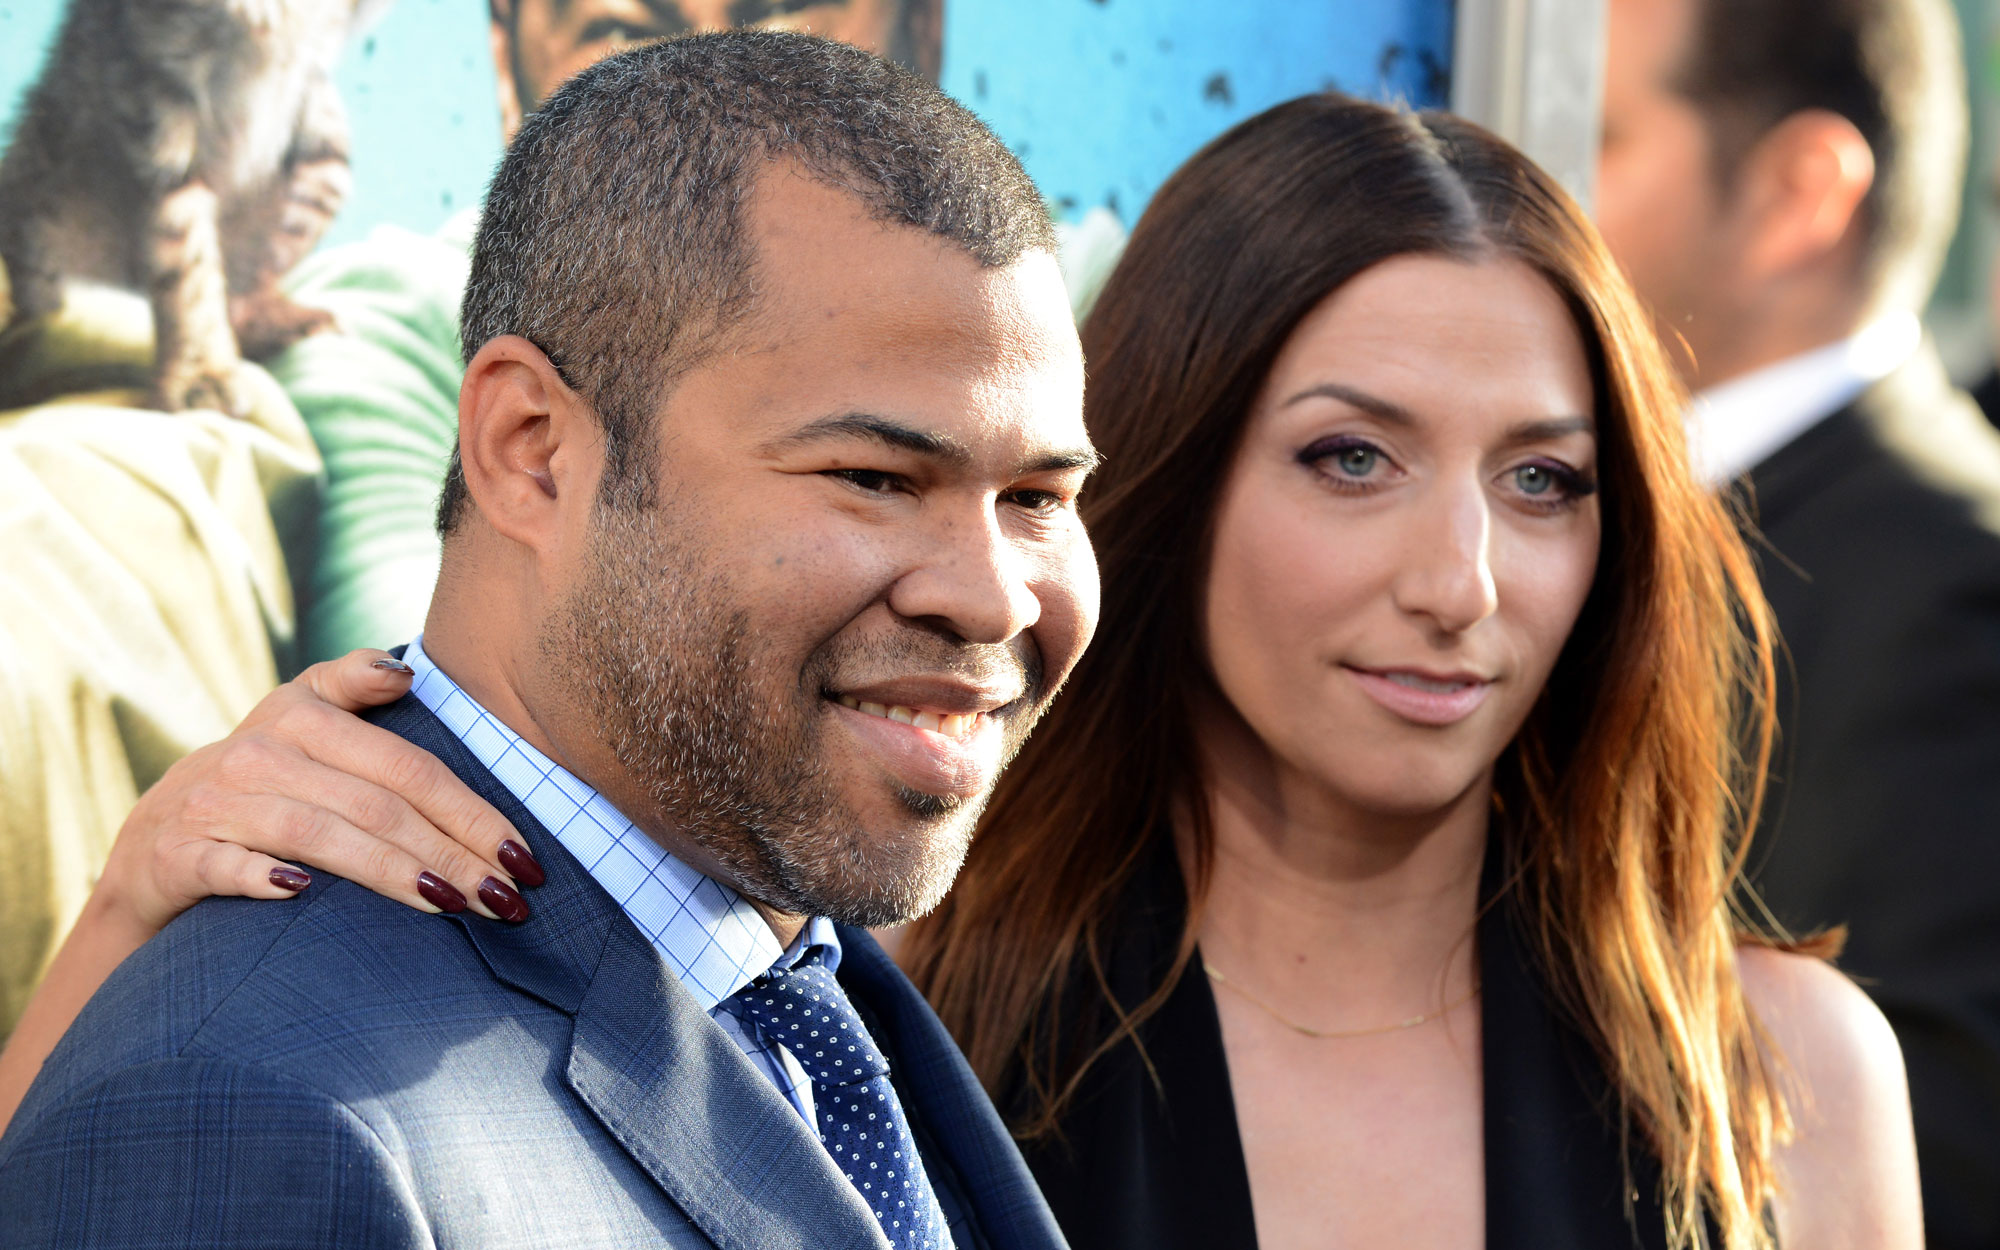 Jordan Peele Denied Boarding to His Honeymoon Flight Because of Damaged Passport